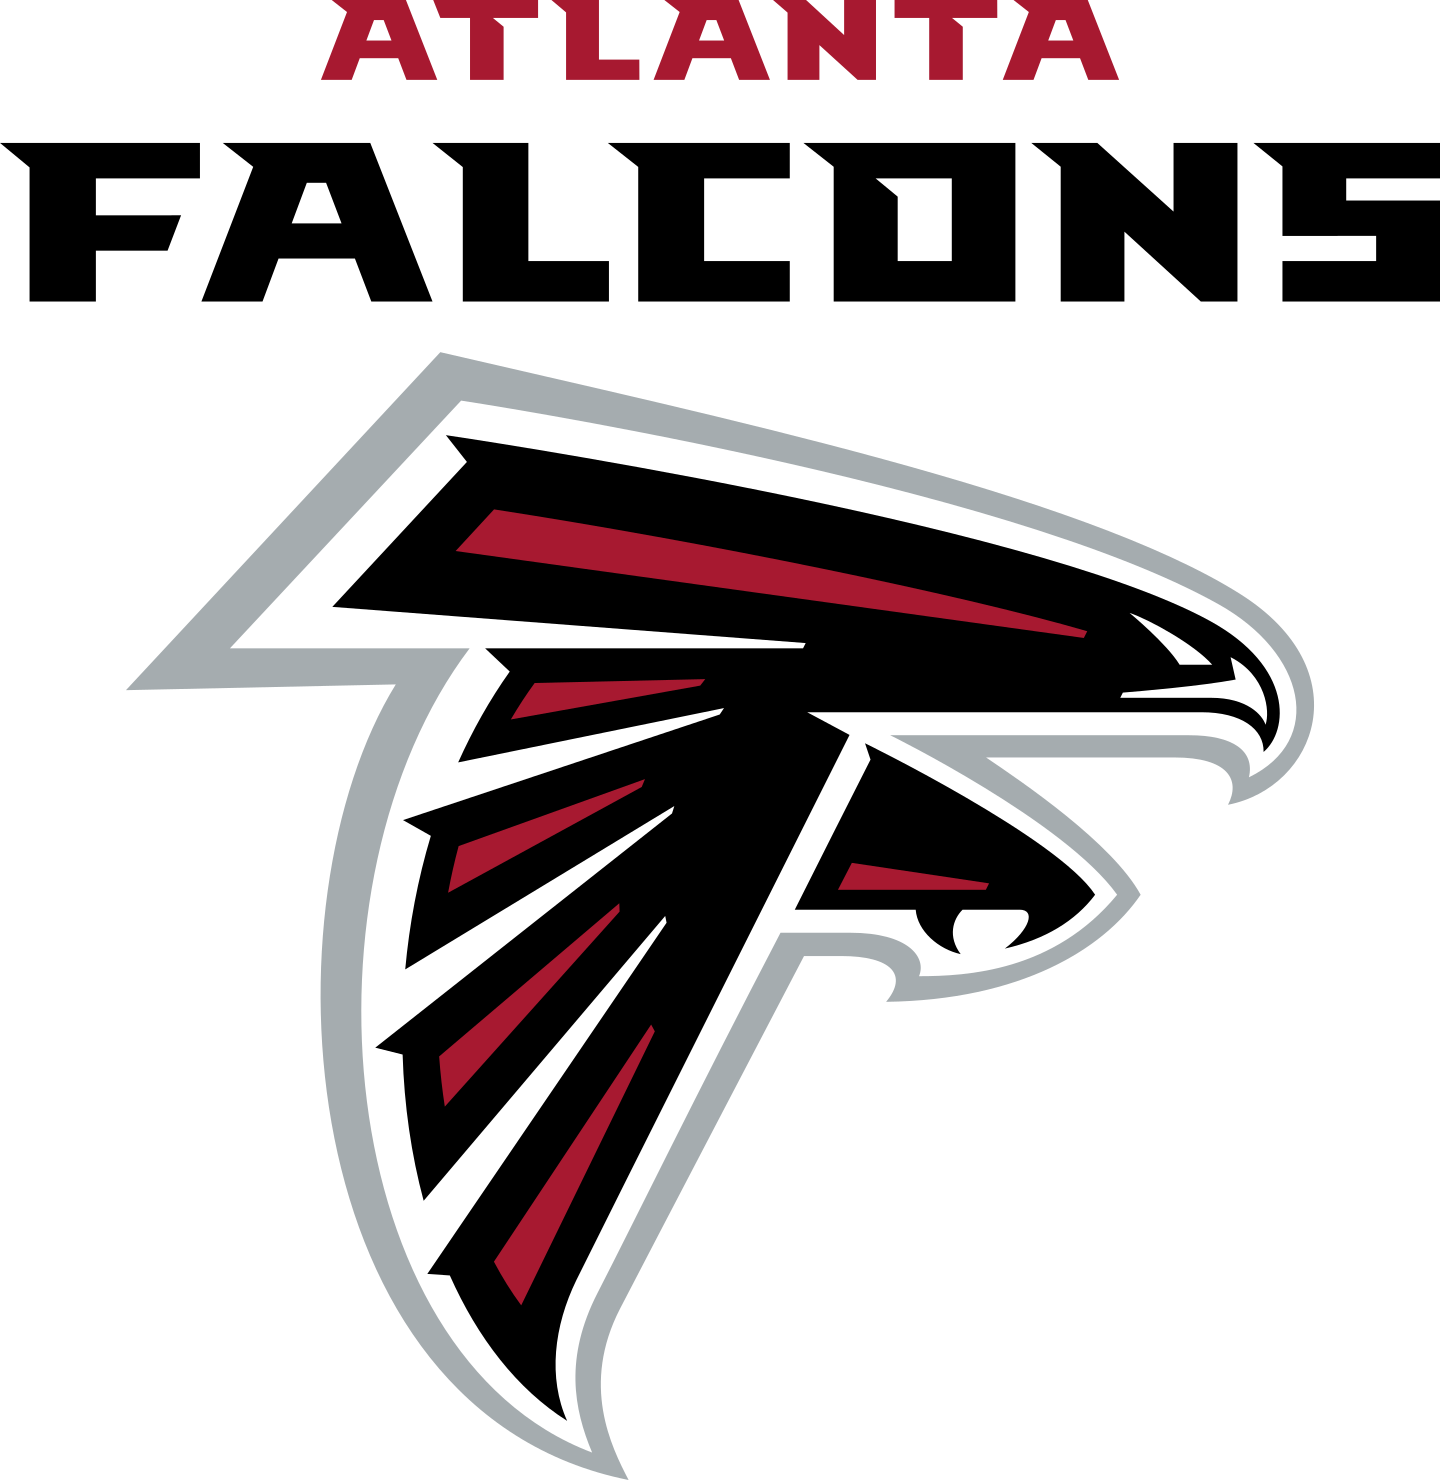 atlanta falcons logo 3 - Atlanta Falcons Logo